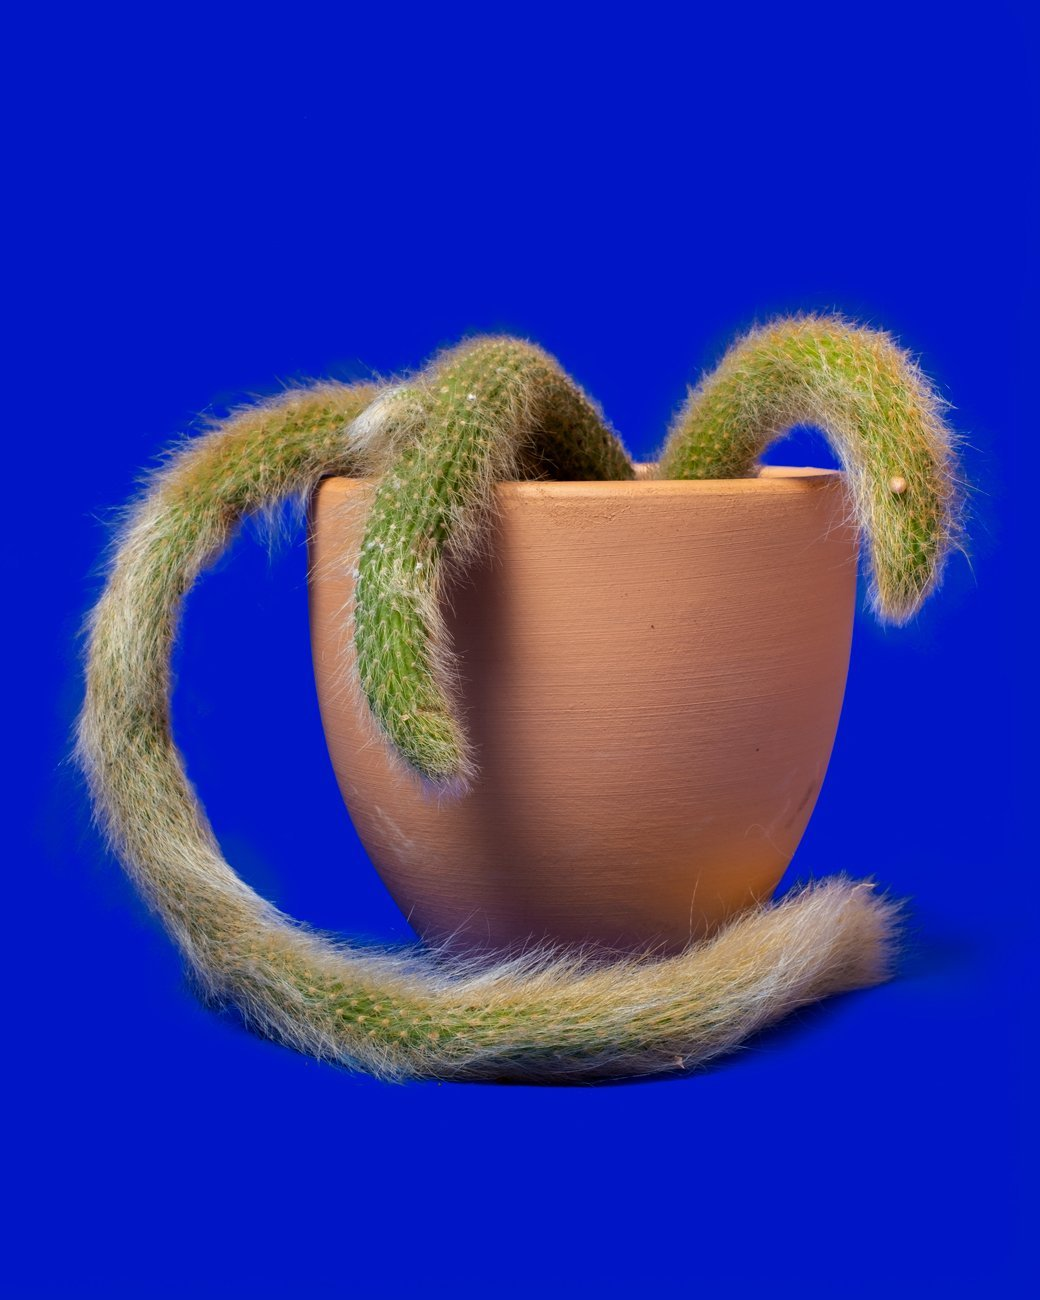 Popular Plants 2021, Monkey Tail Cactus